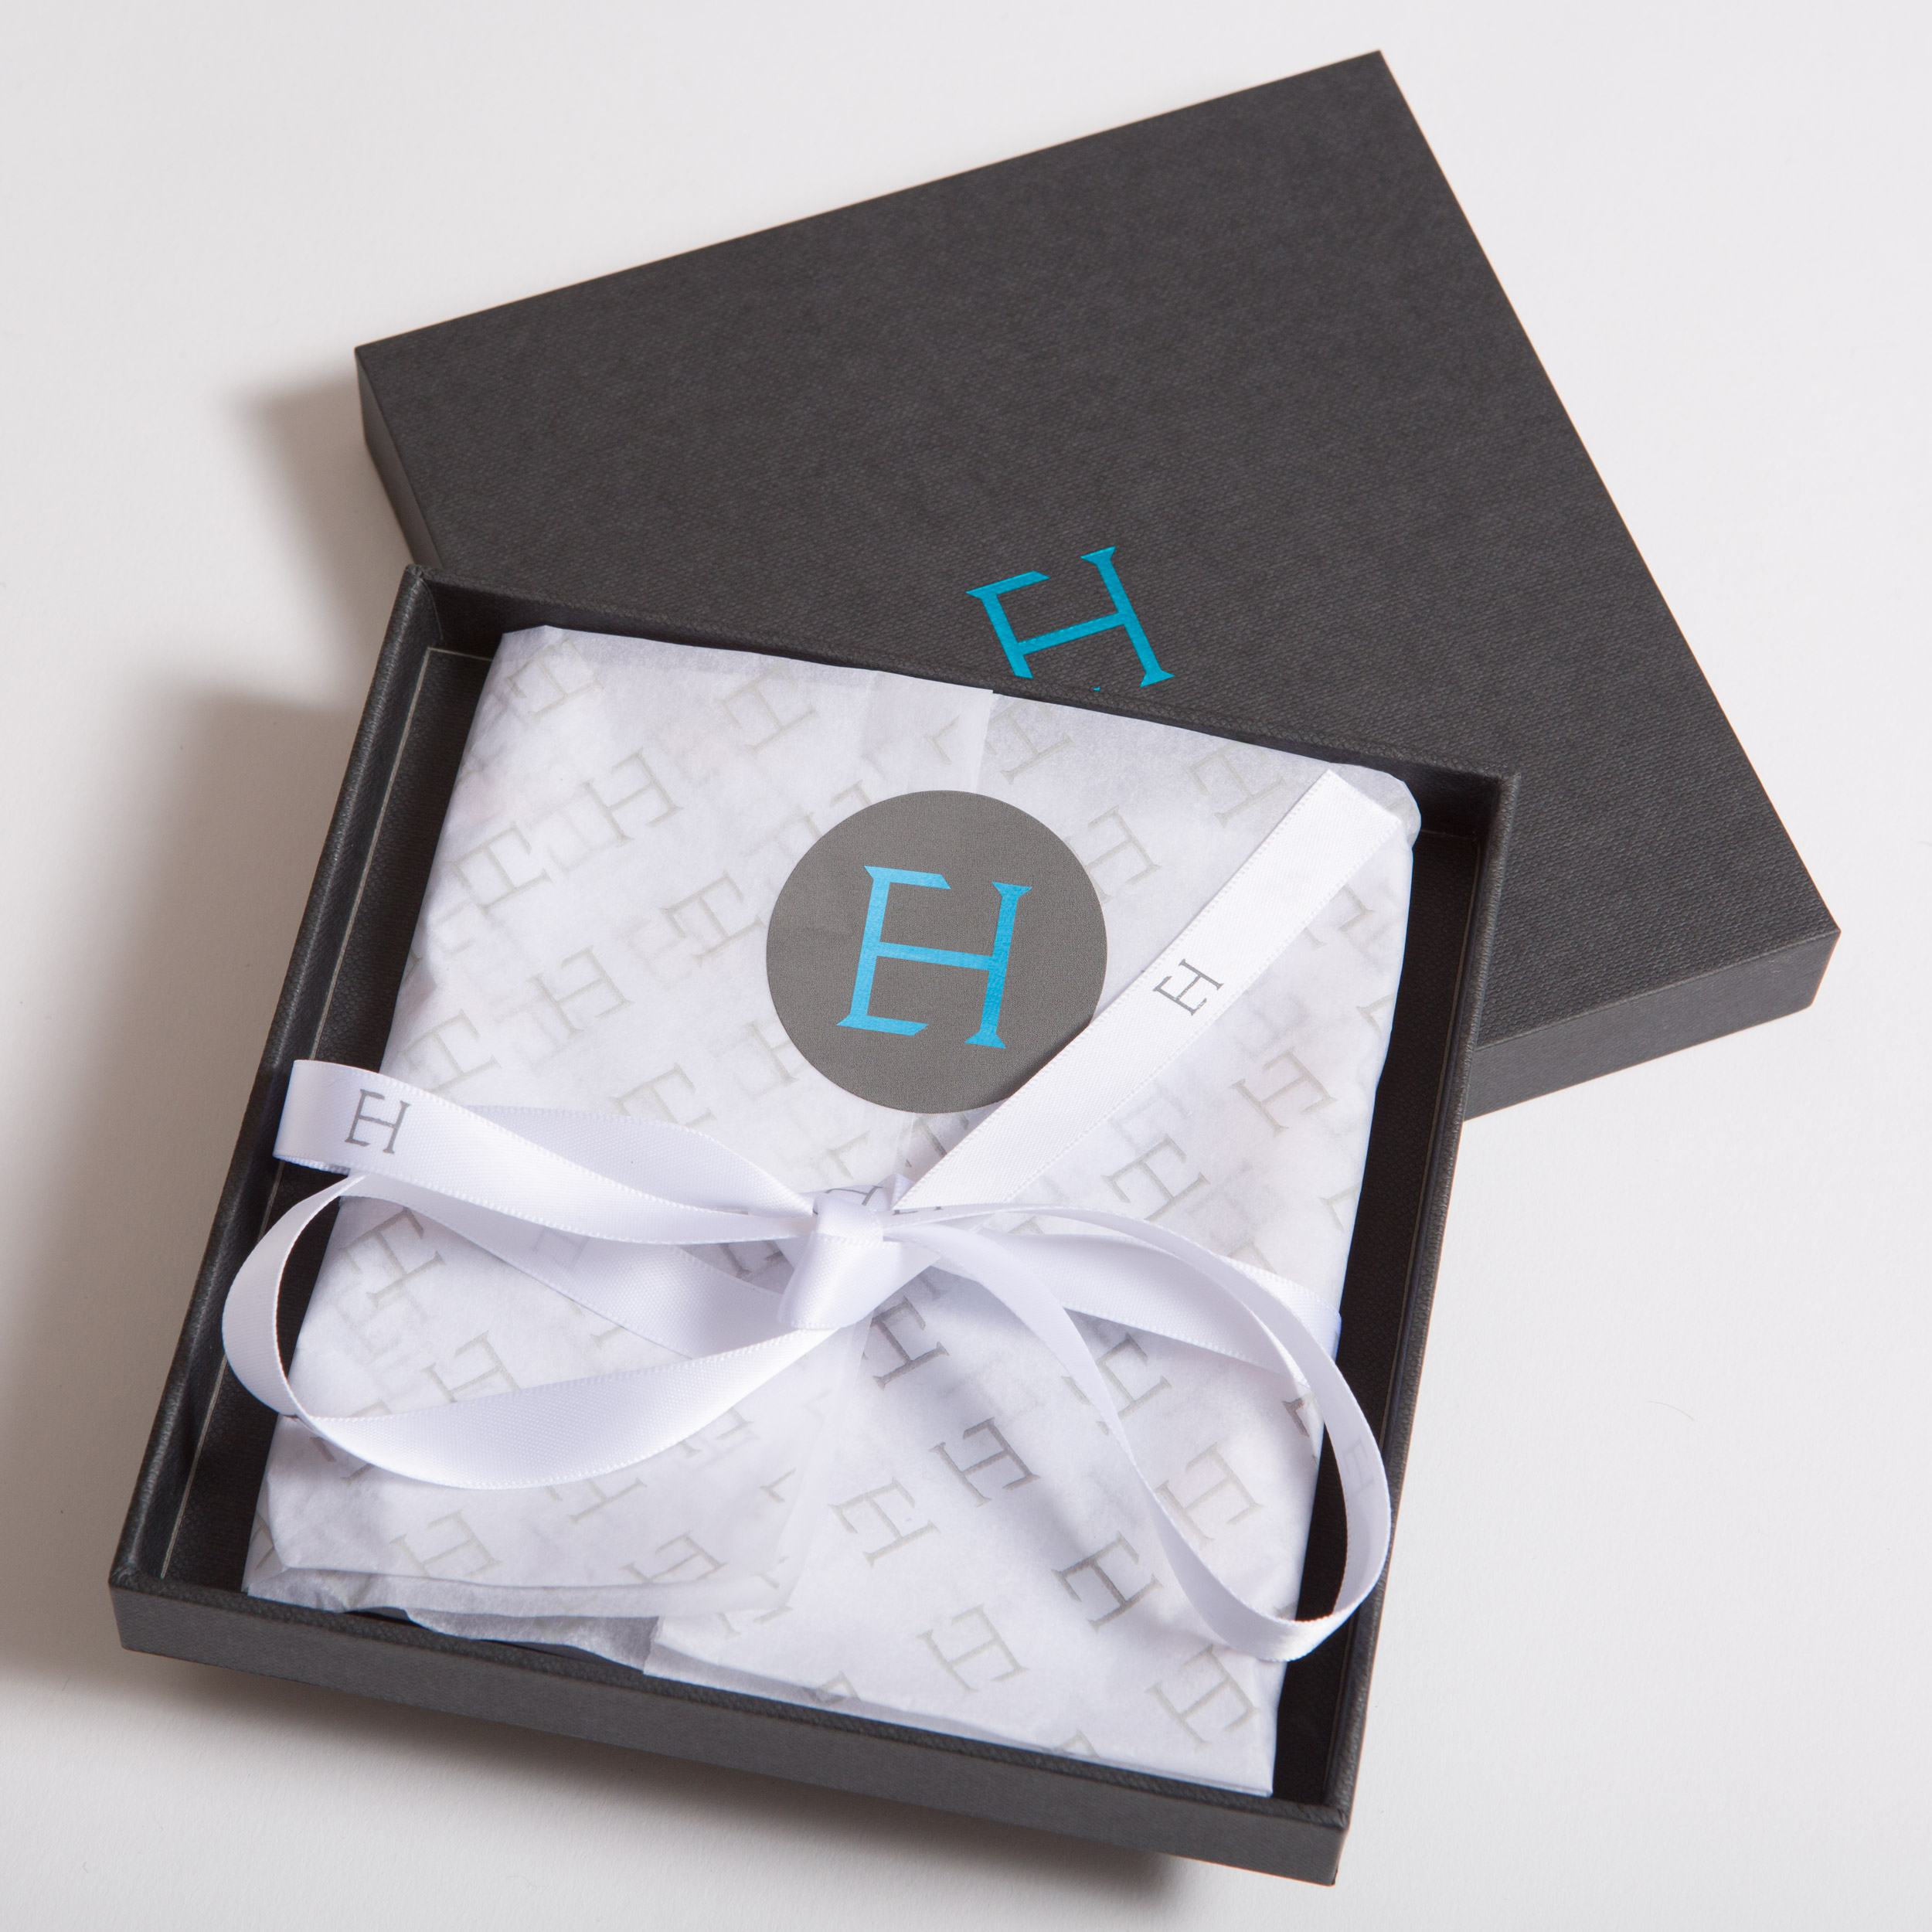 Pocket Square packaging